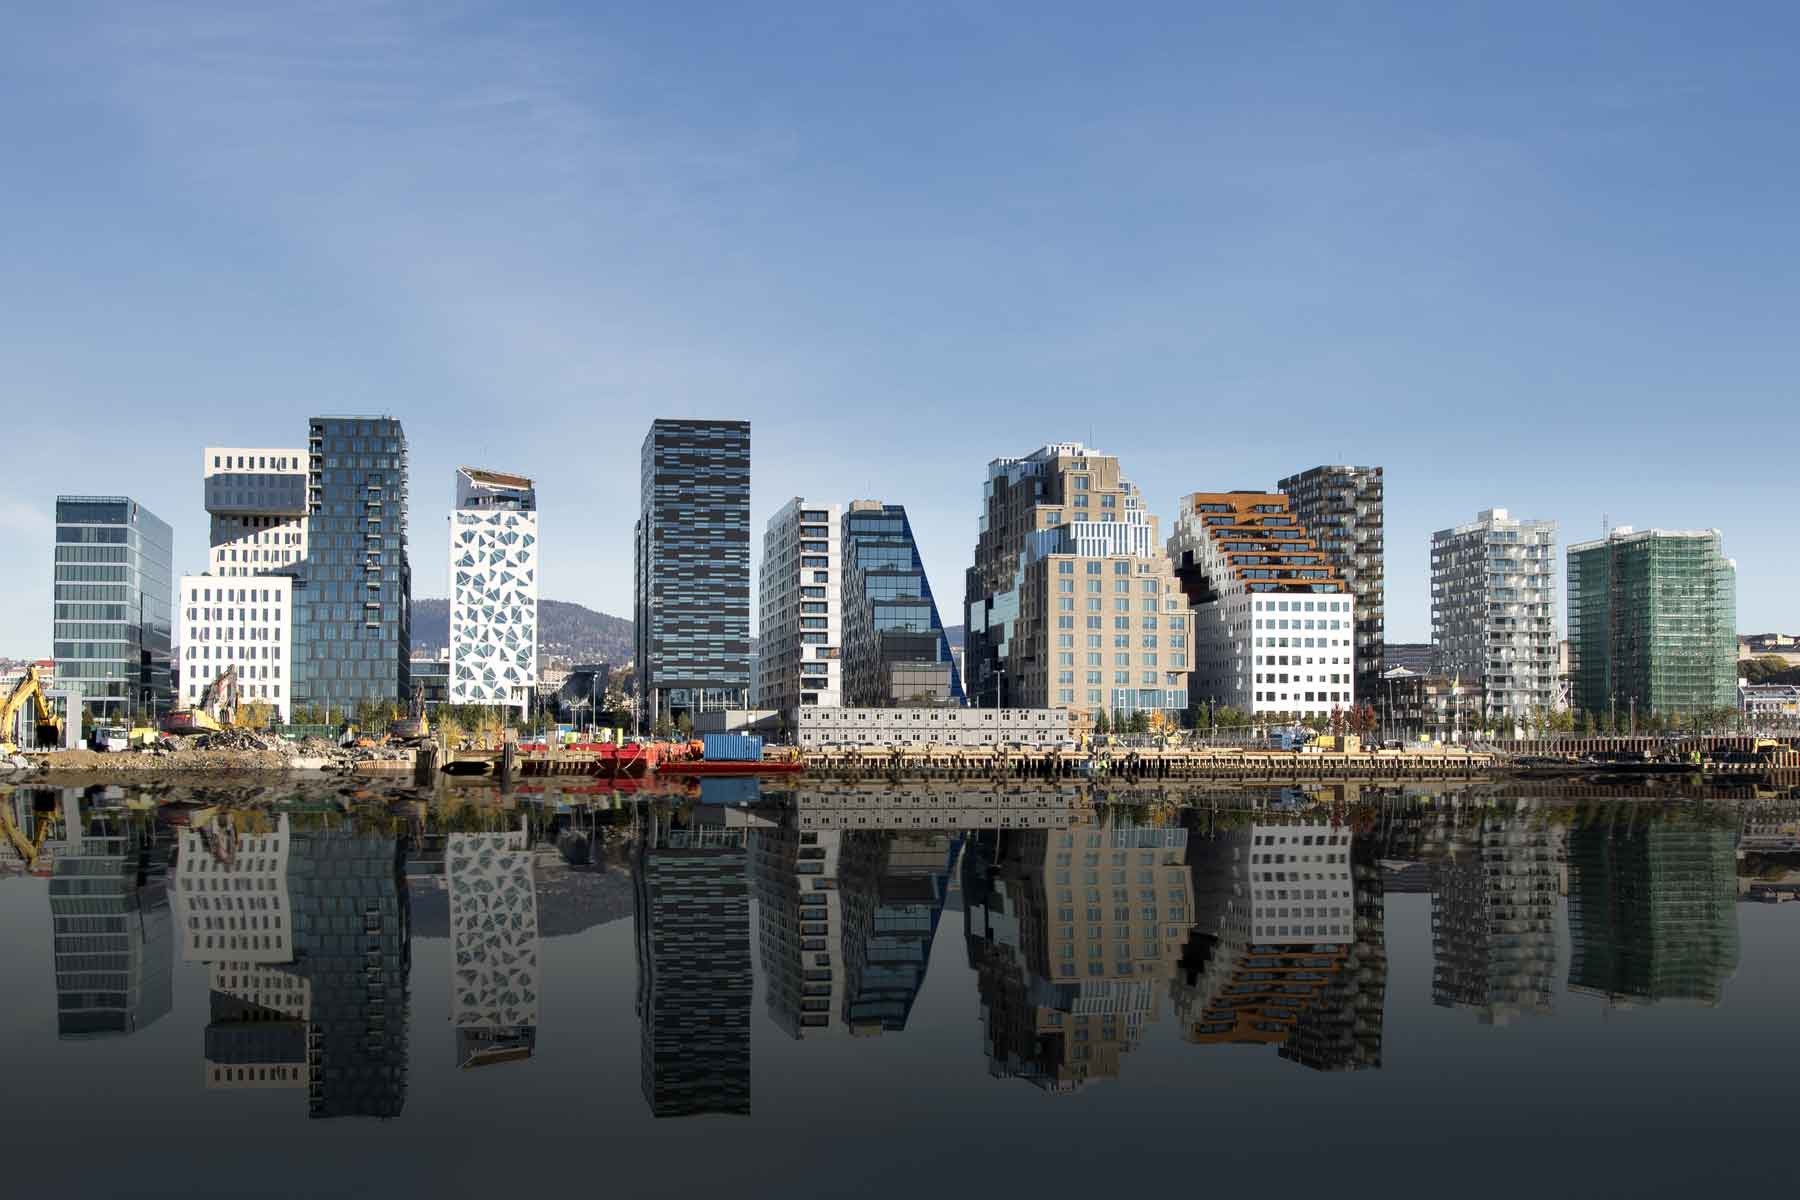 The waterfront in Oslo, Norway